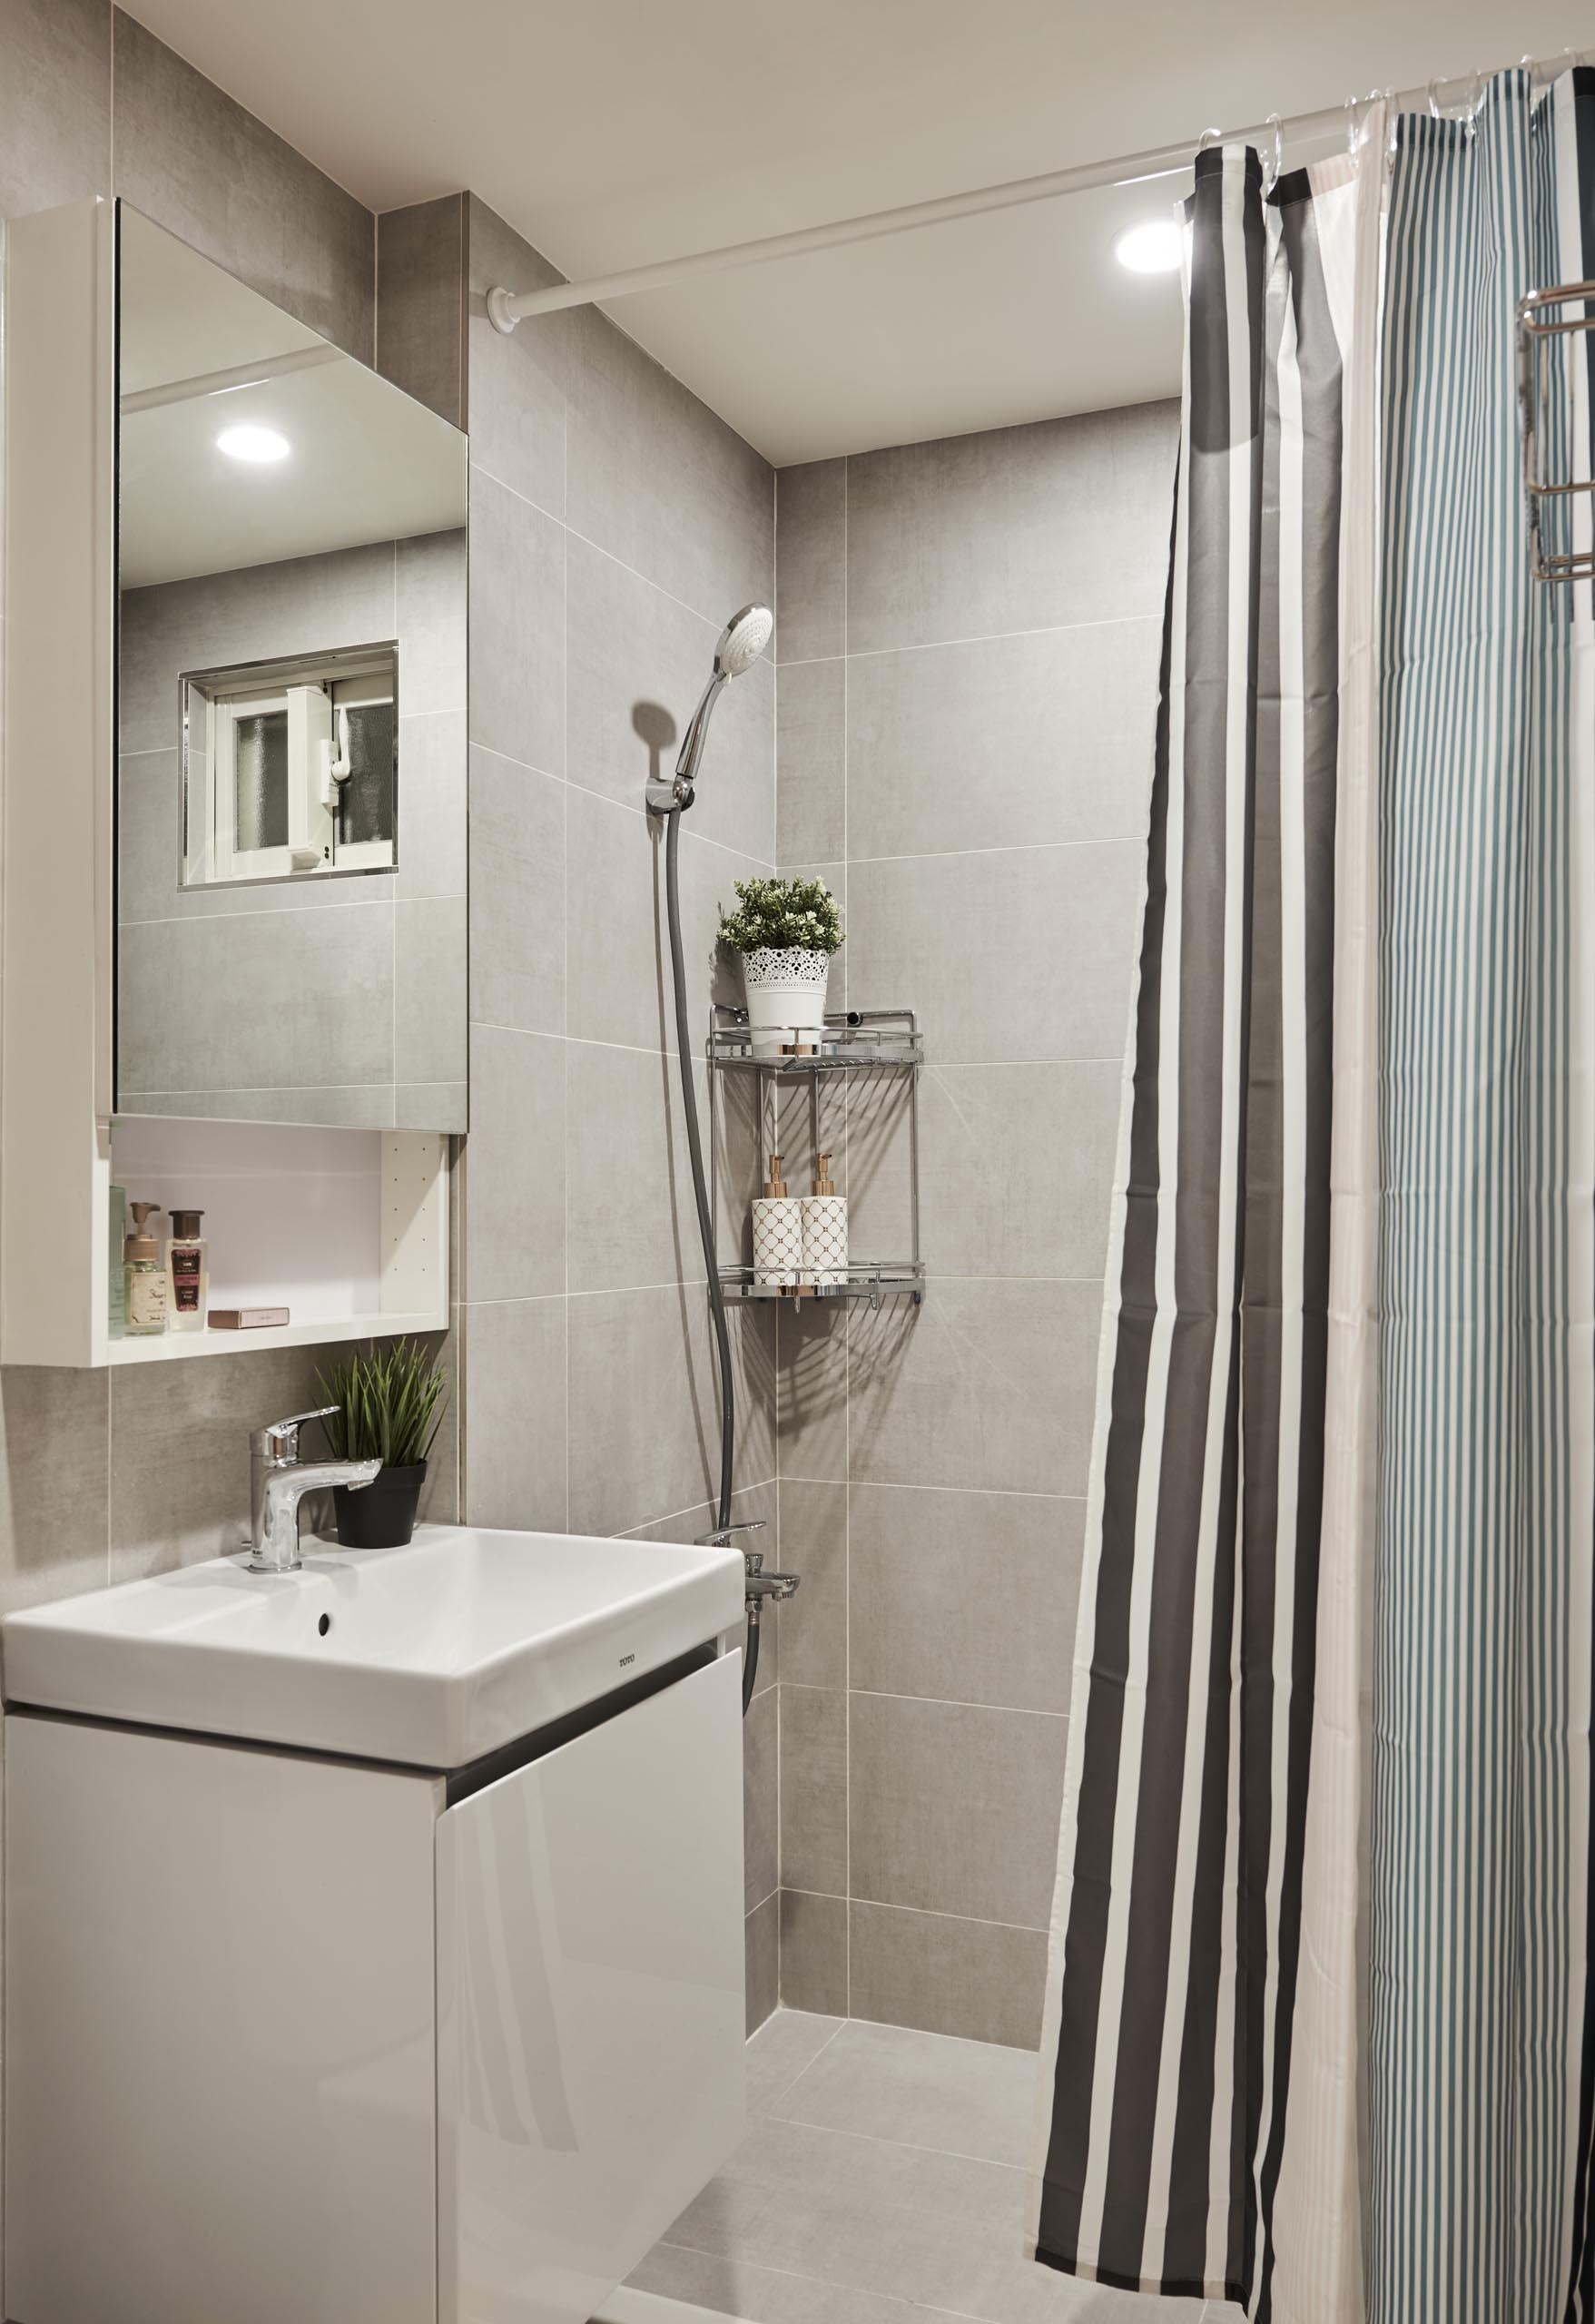 In this small bathroom, there's large format tiles that cover the walls and floors.